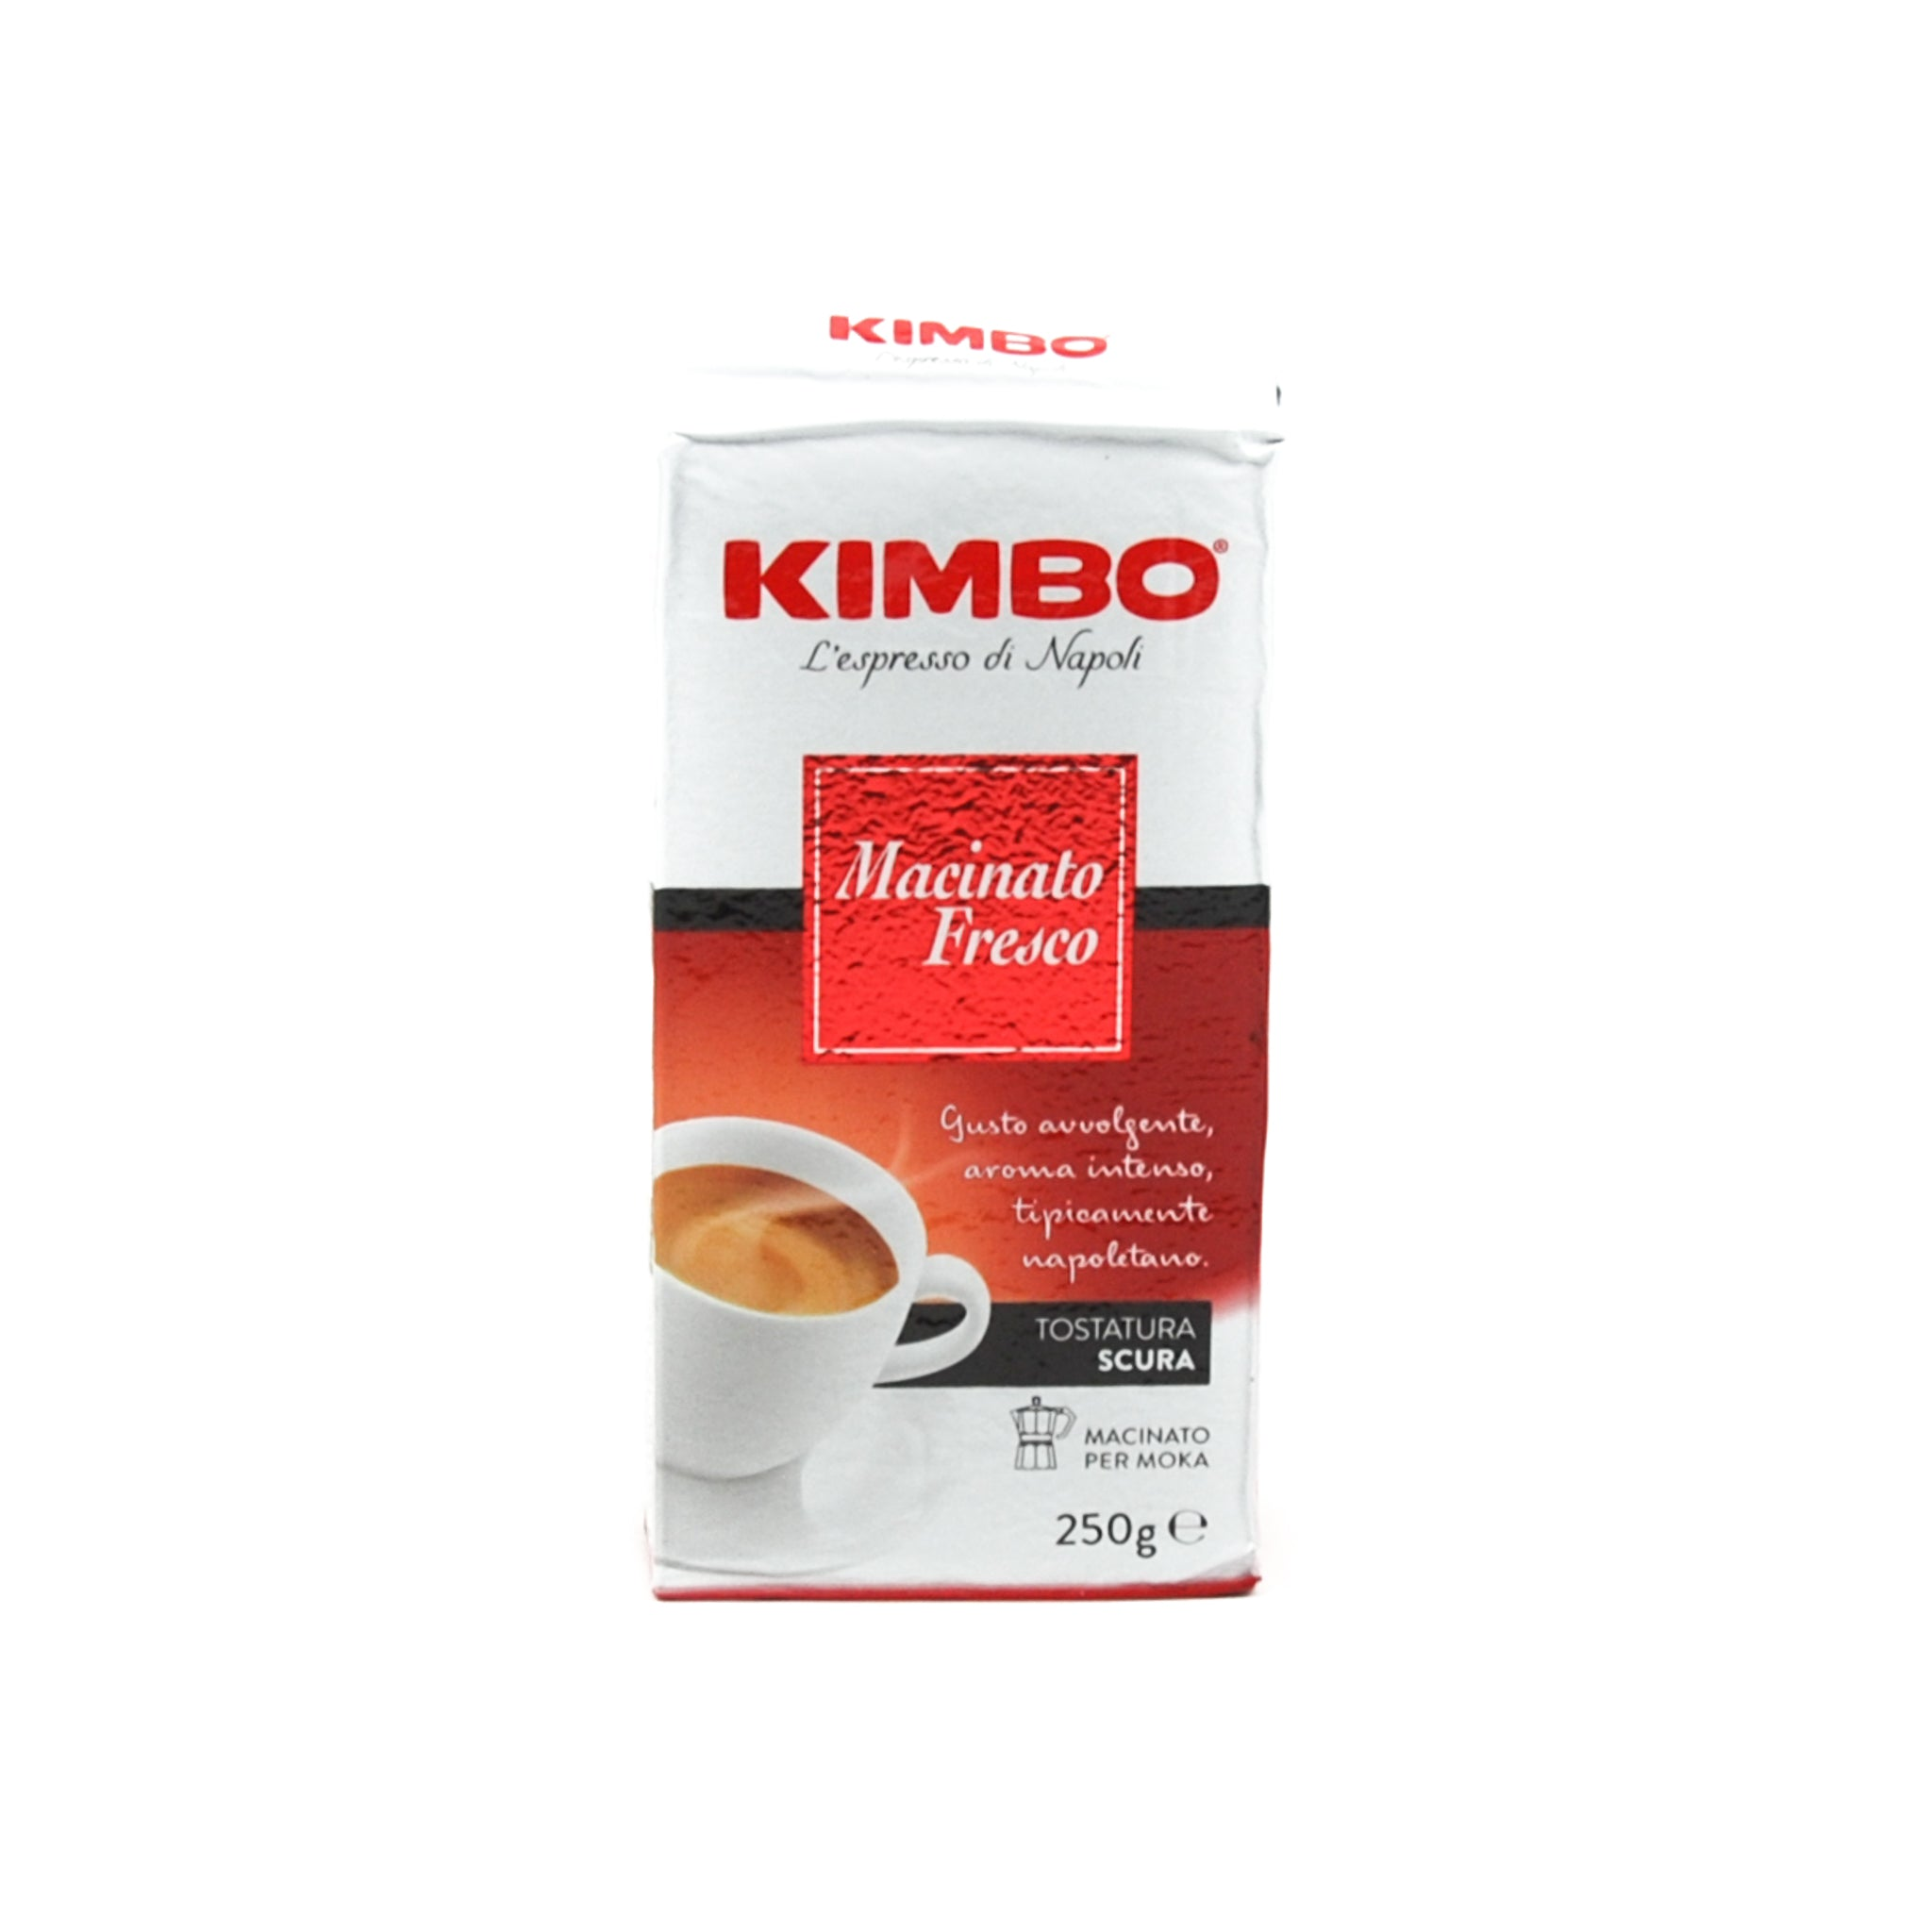 Kimbo Macinato Fresco Classico Coffee 250g Ingredients Drinks Tea & Coffee Italian Food